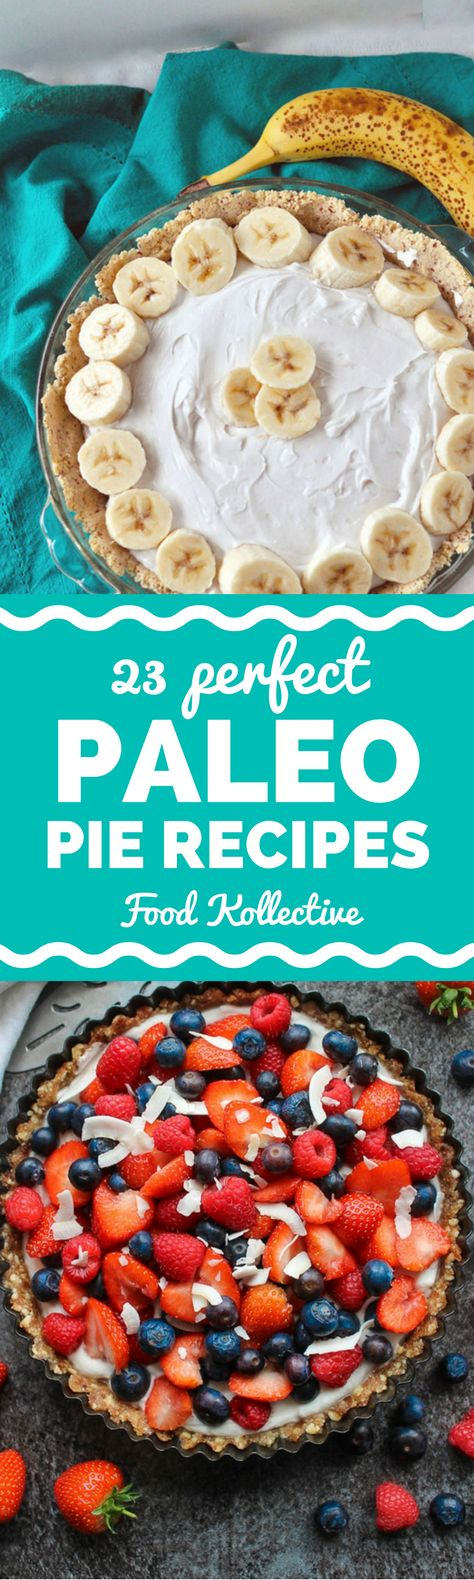 I was looking for Paleo pie recipes and these look absolutely delicious! There are recipes for Paleo pumpkin pie, Paleo pecan pie, Paleo chocolate pie, Paleo key lime pie, Paleo apple pie, and more. I can't wait to make these for a Paleo dessert! Collected on FoodKollective.com